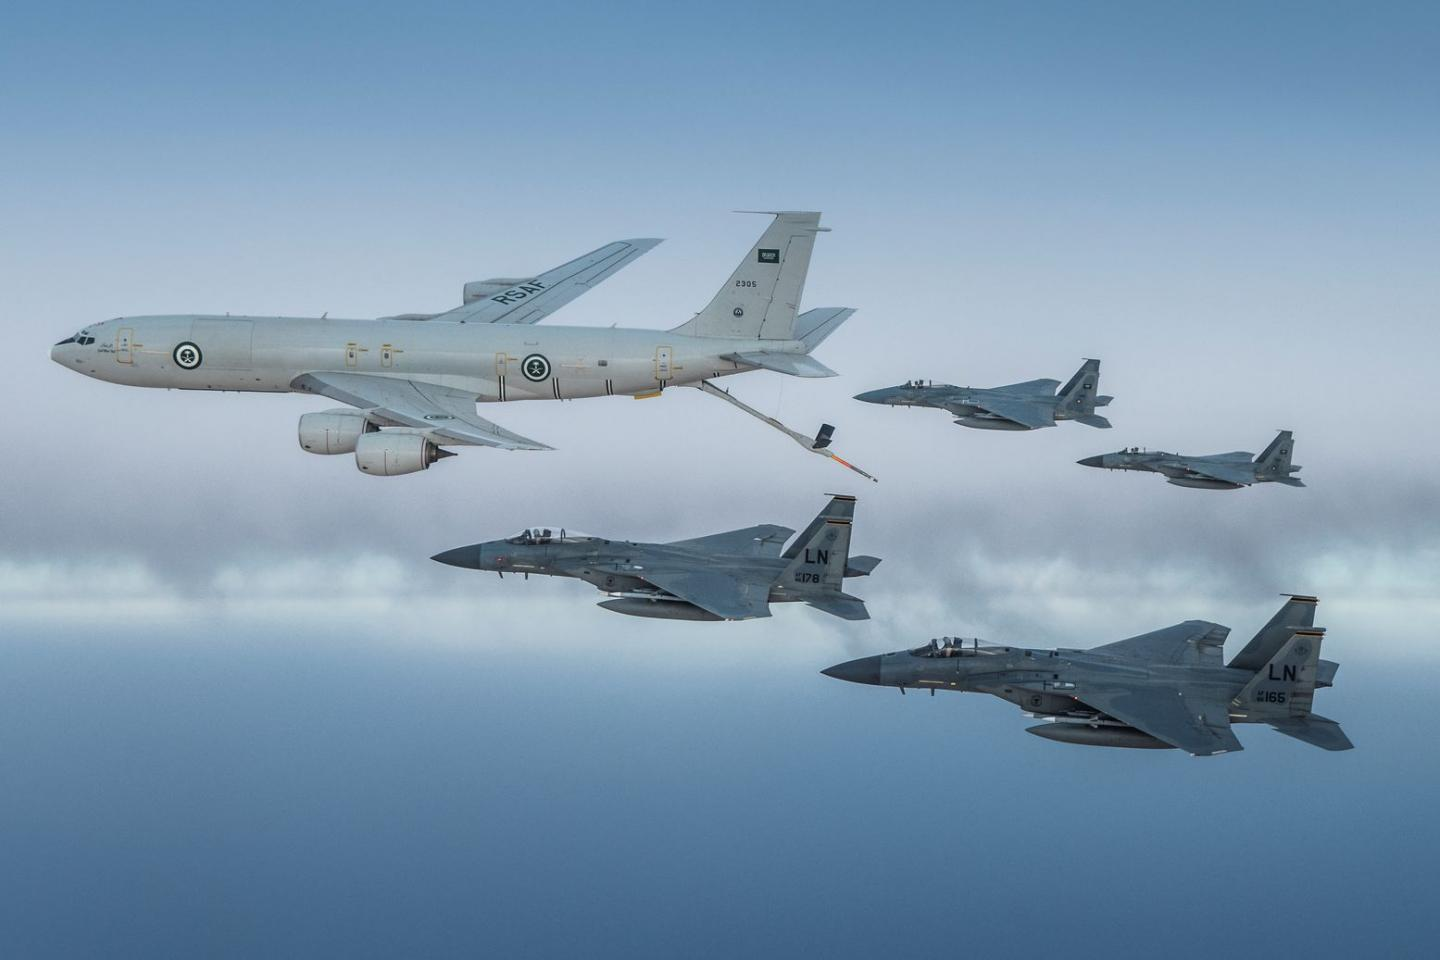 Does the Air Force Really Need 74 Additional Combat Squadrons?